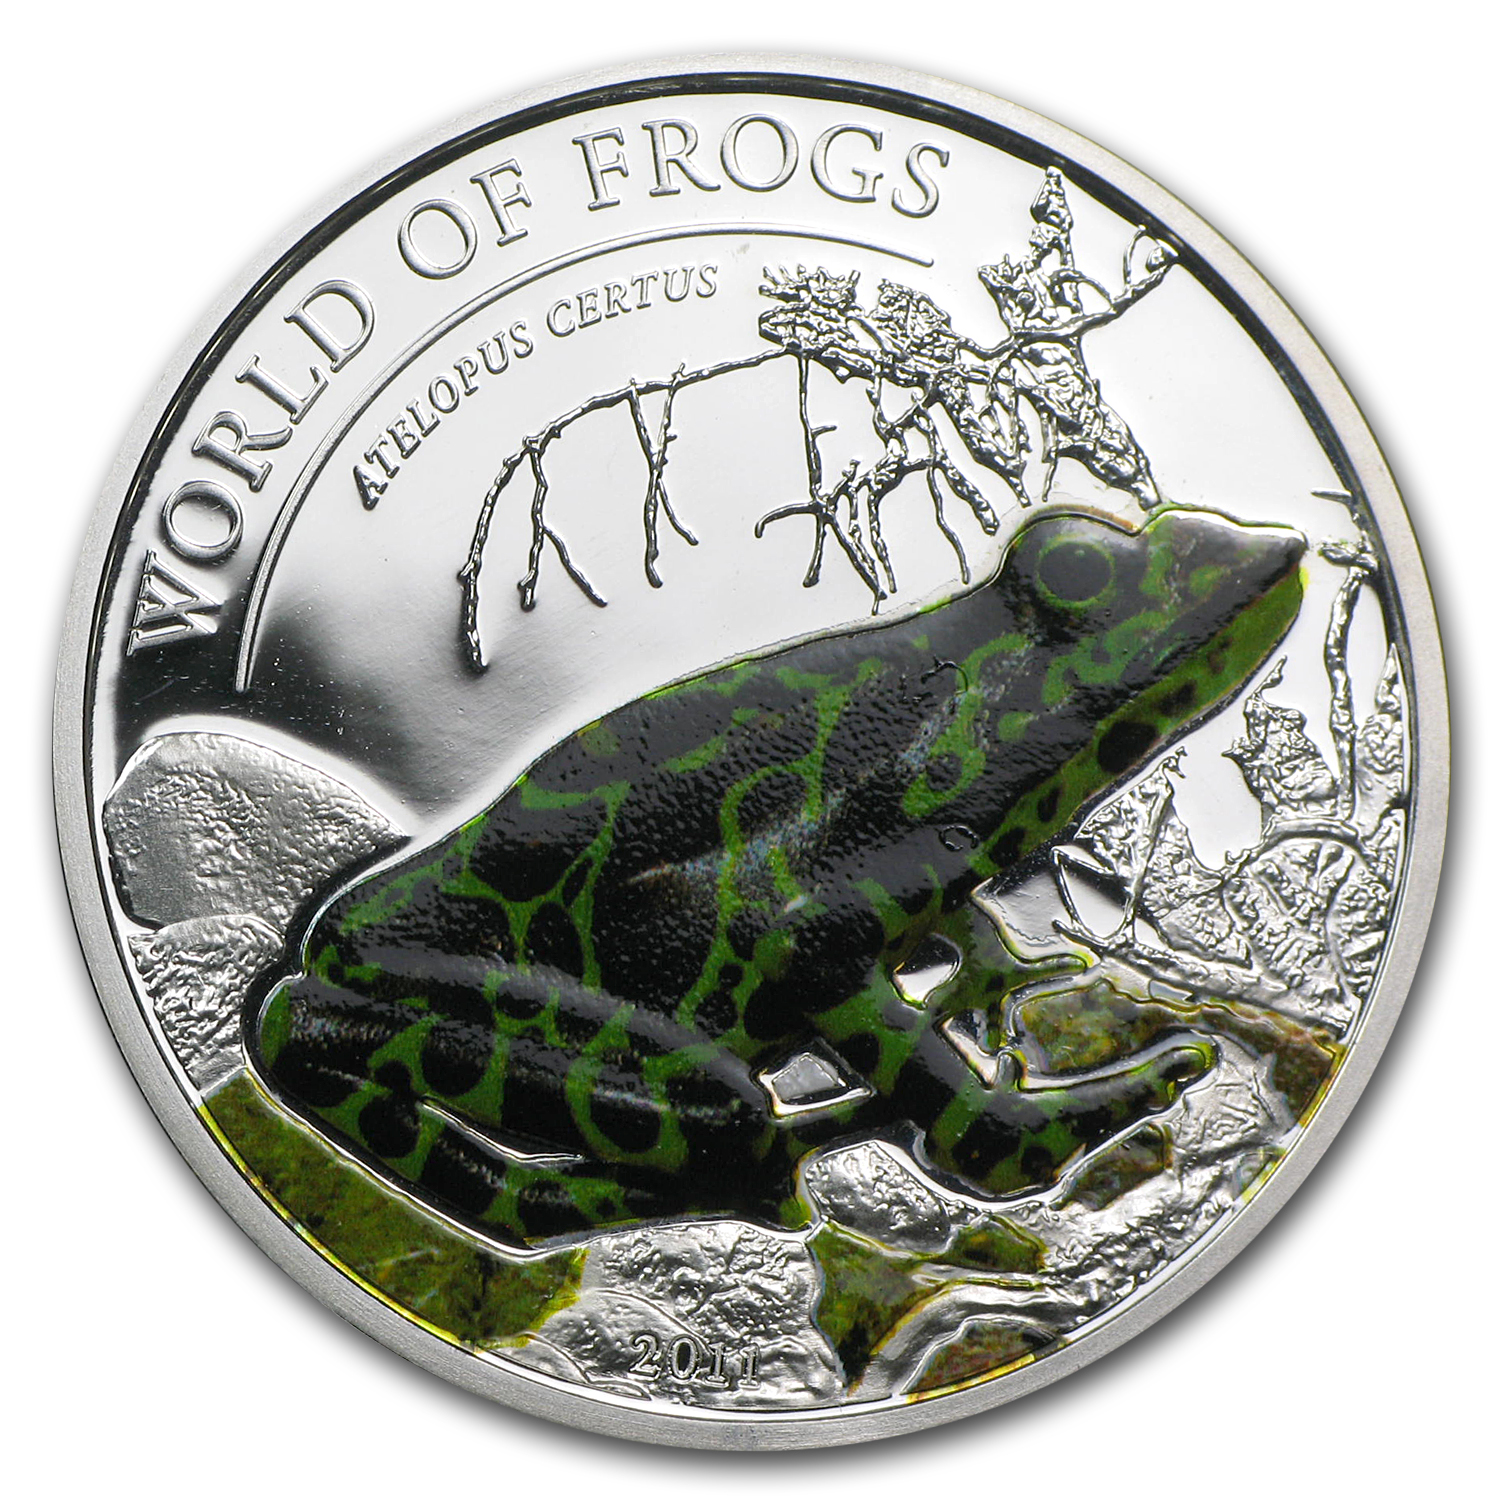 Palau 2011 Silver Proof $2 World of Frogs- Green Atelopus Certus